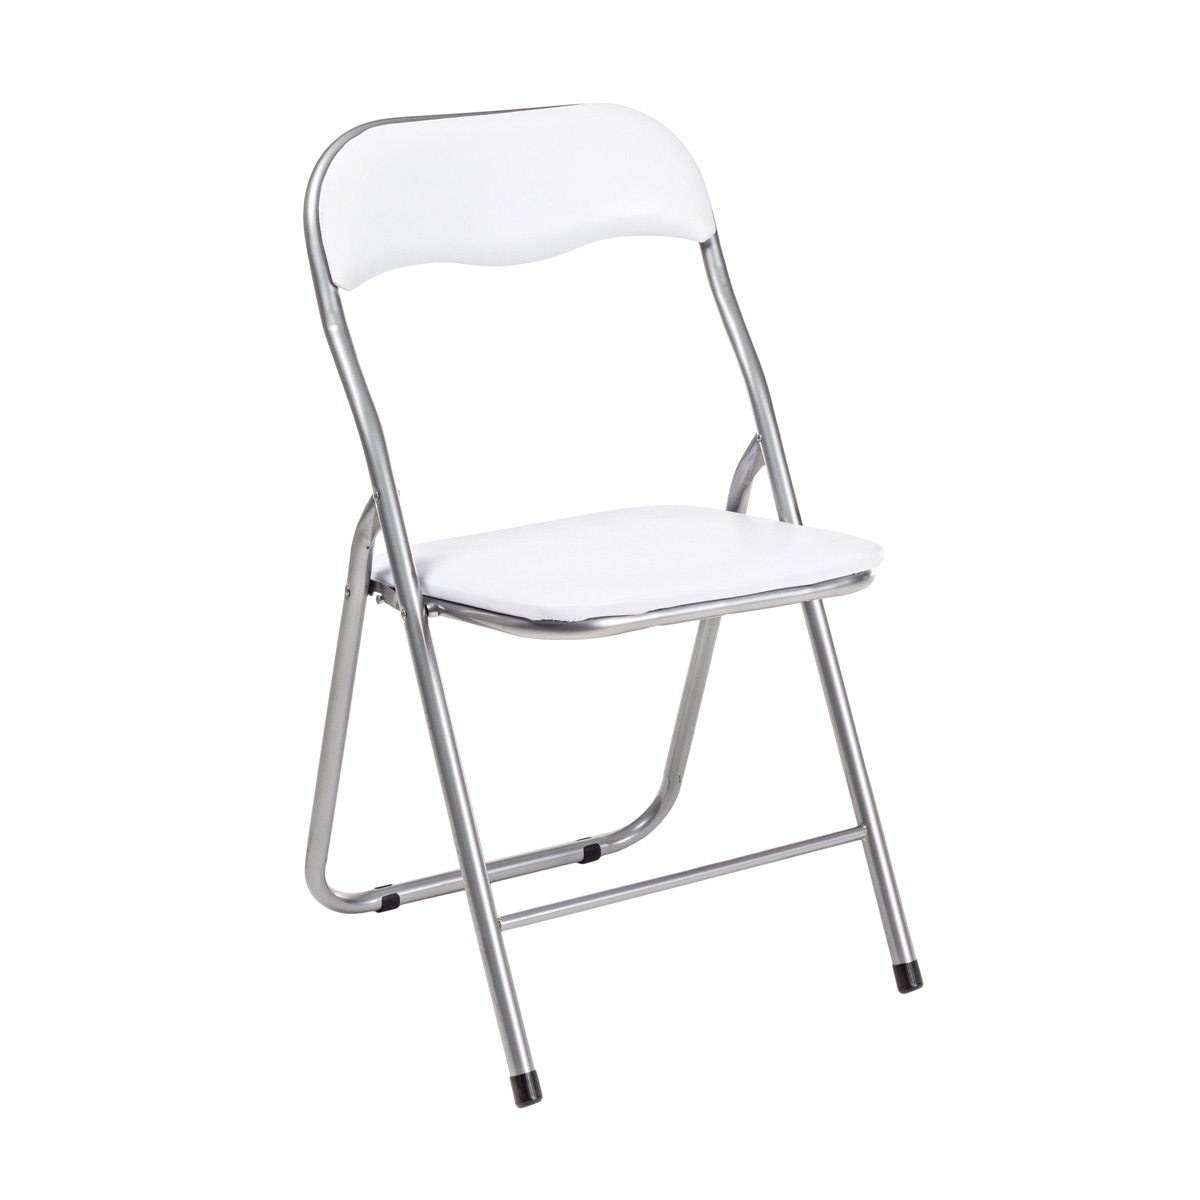 Photos 1: Bizzotto Folding chair in metal - white 5730524